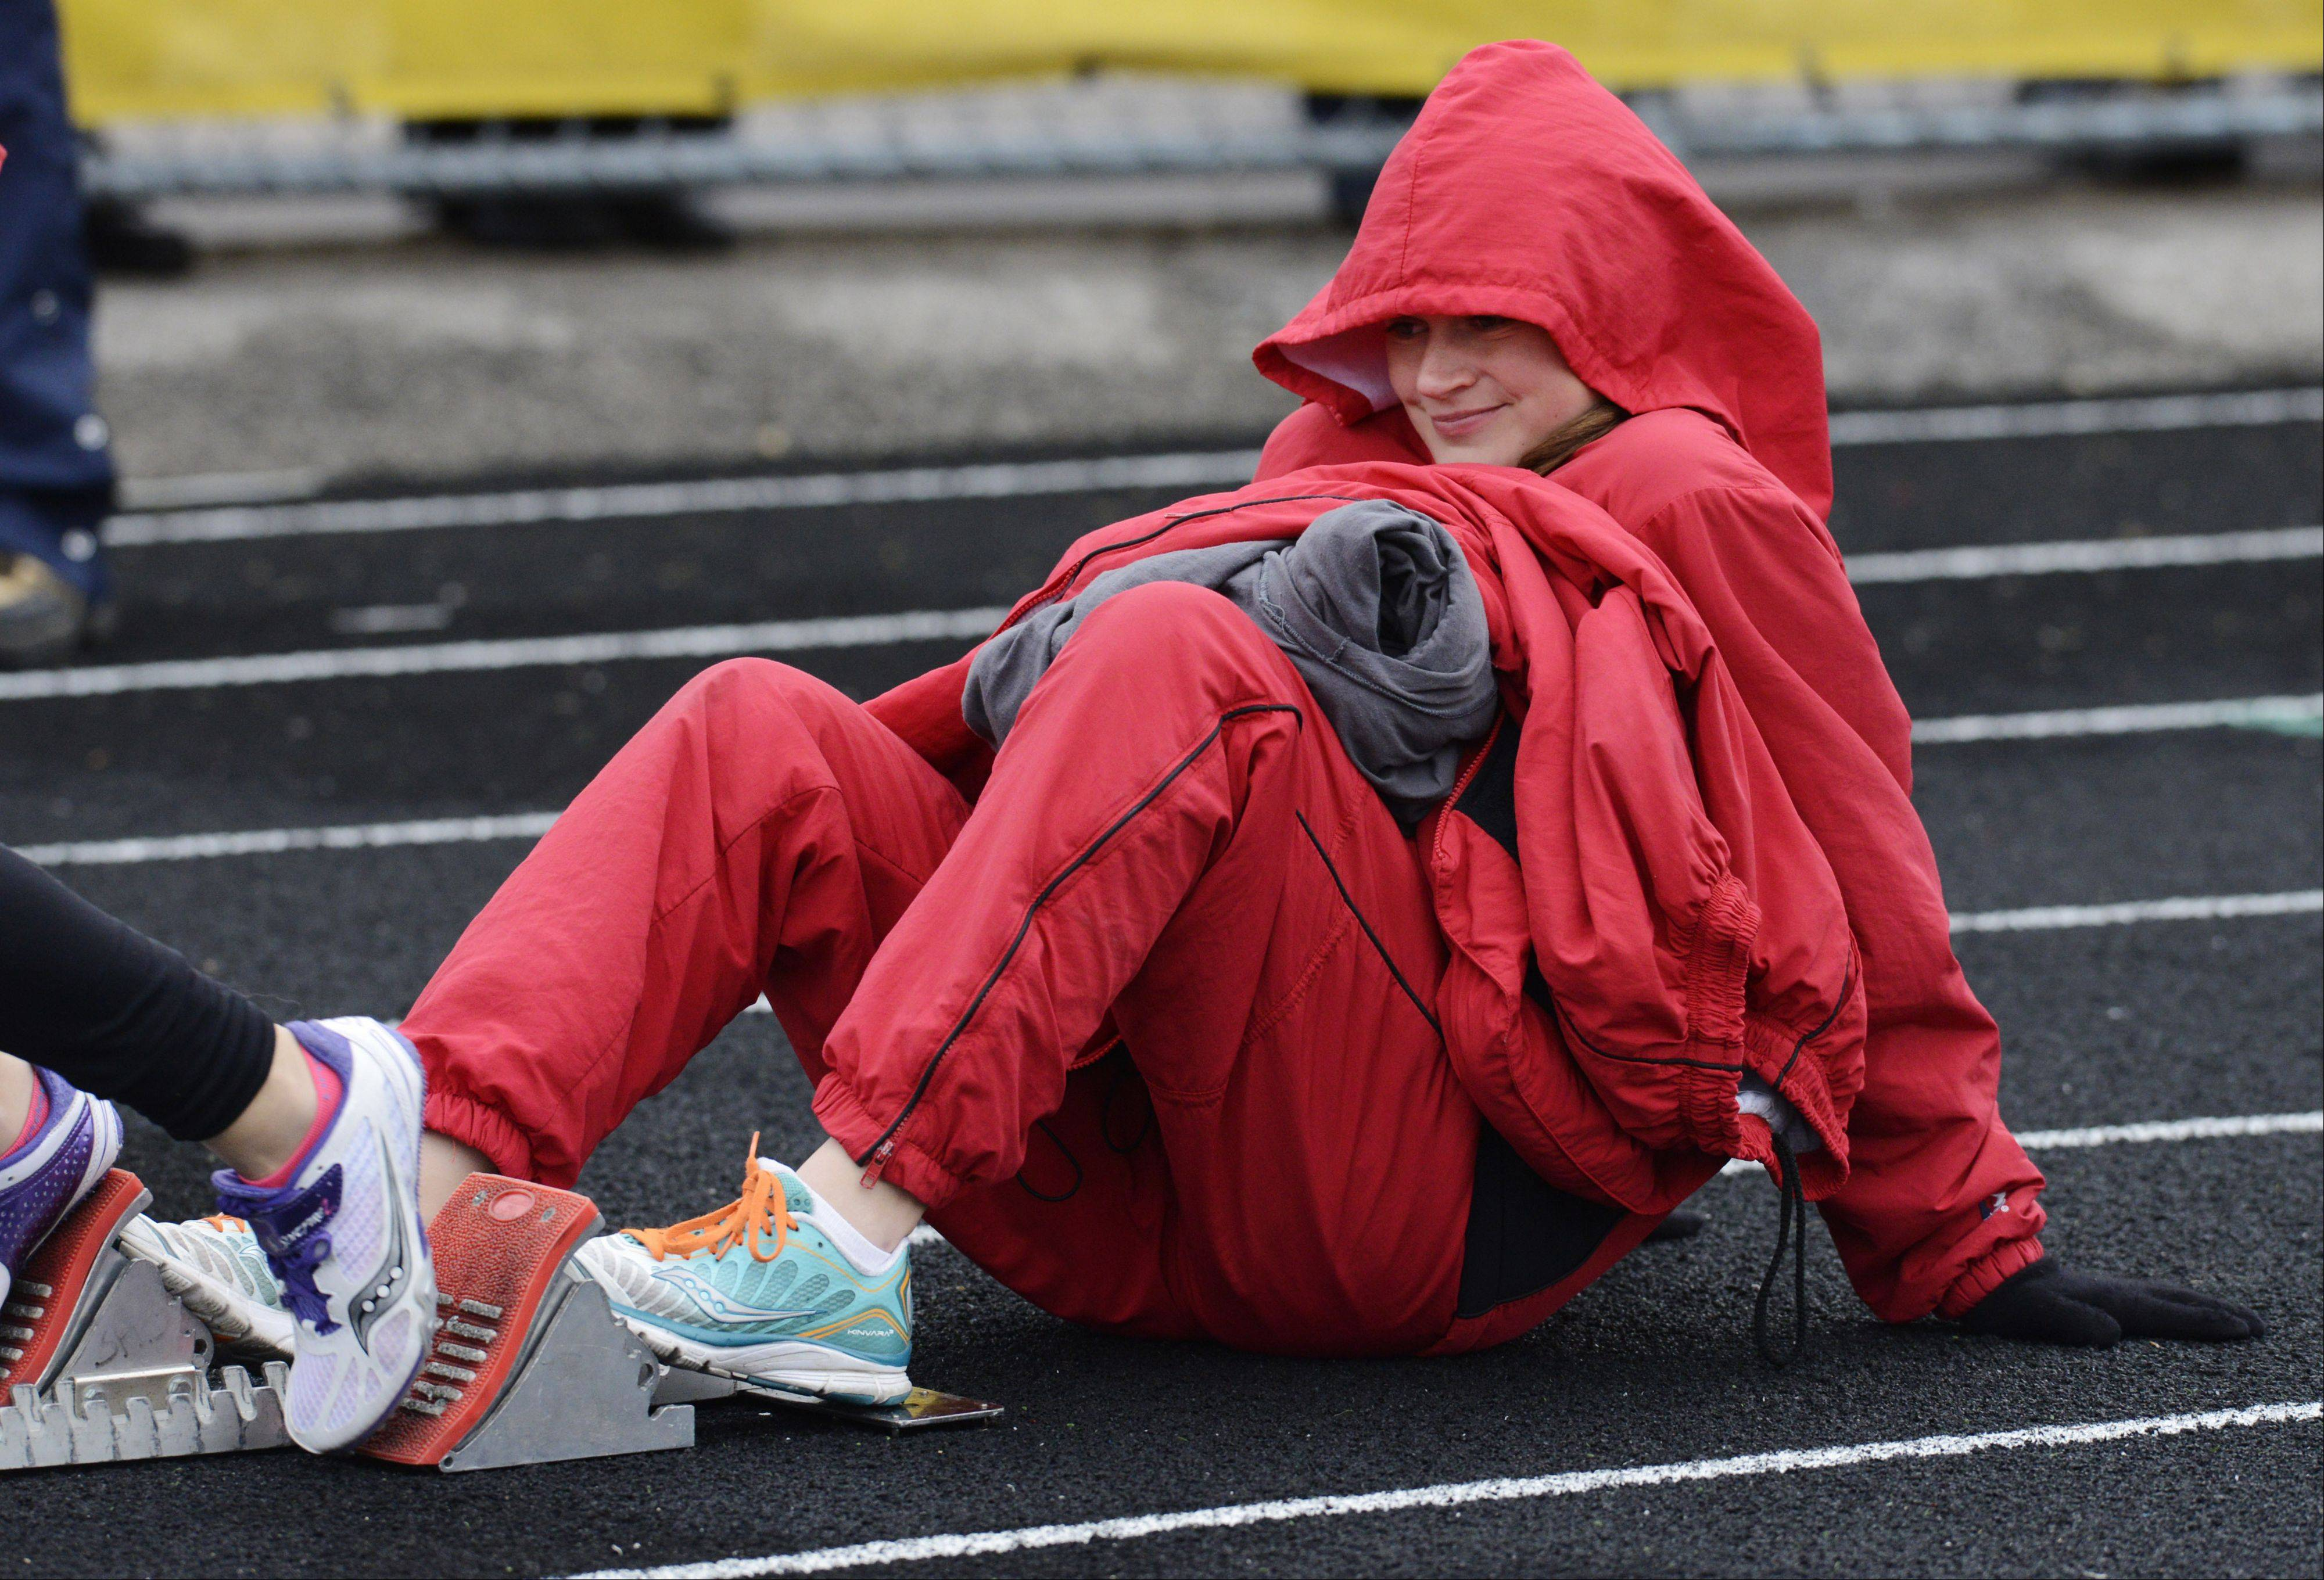 On an unseasonably cool May evening, Barrington's Ingrid Peterson is bundled against the elements as she holds the starting block for a Fillies runner in the 400 meter relay during the Mid-Suburban League girls track meet at Schaumburg High School.